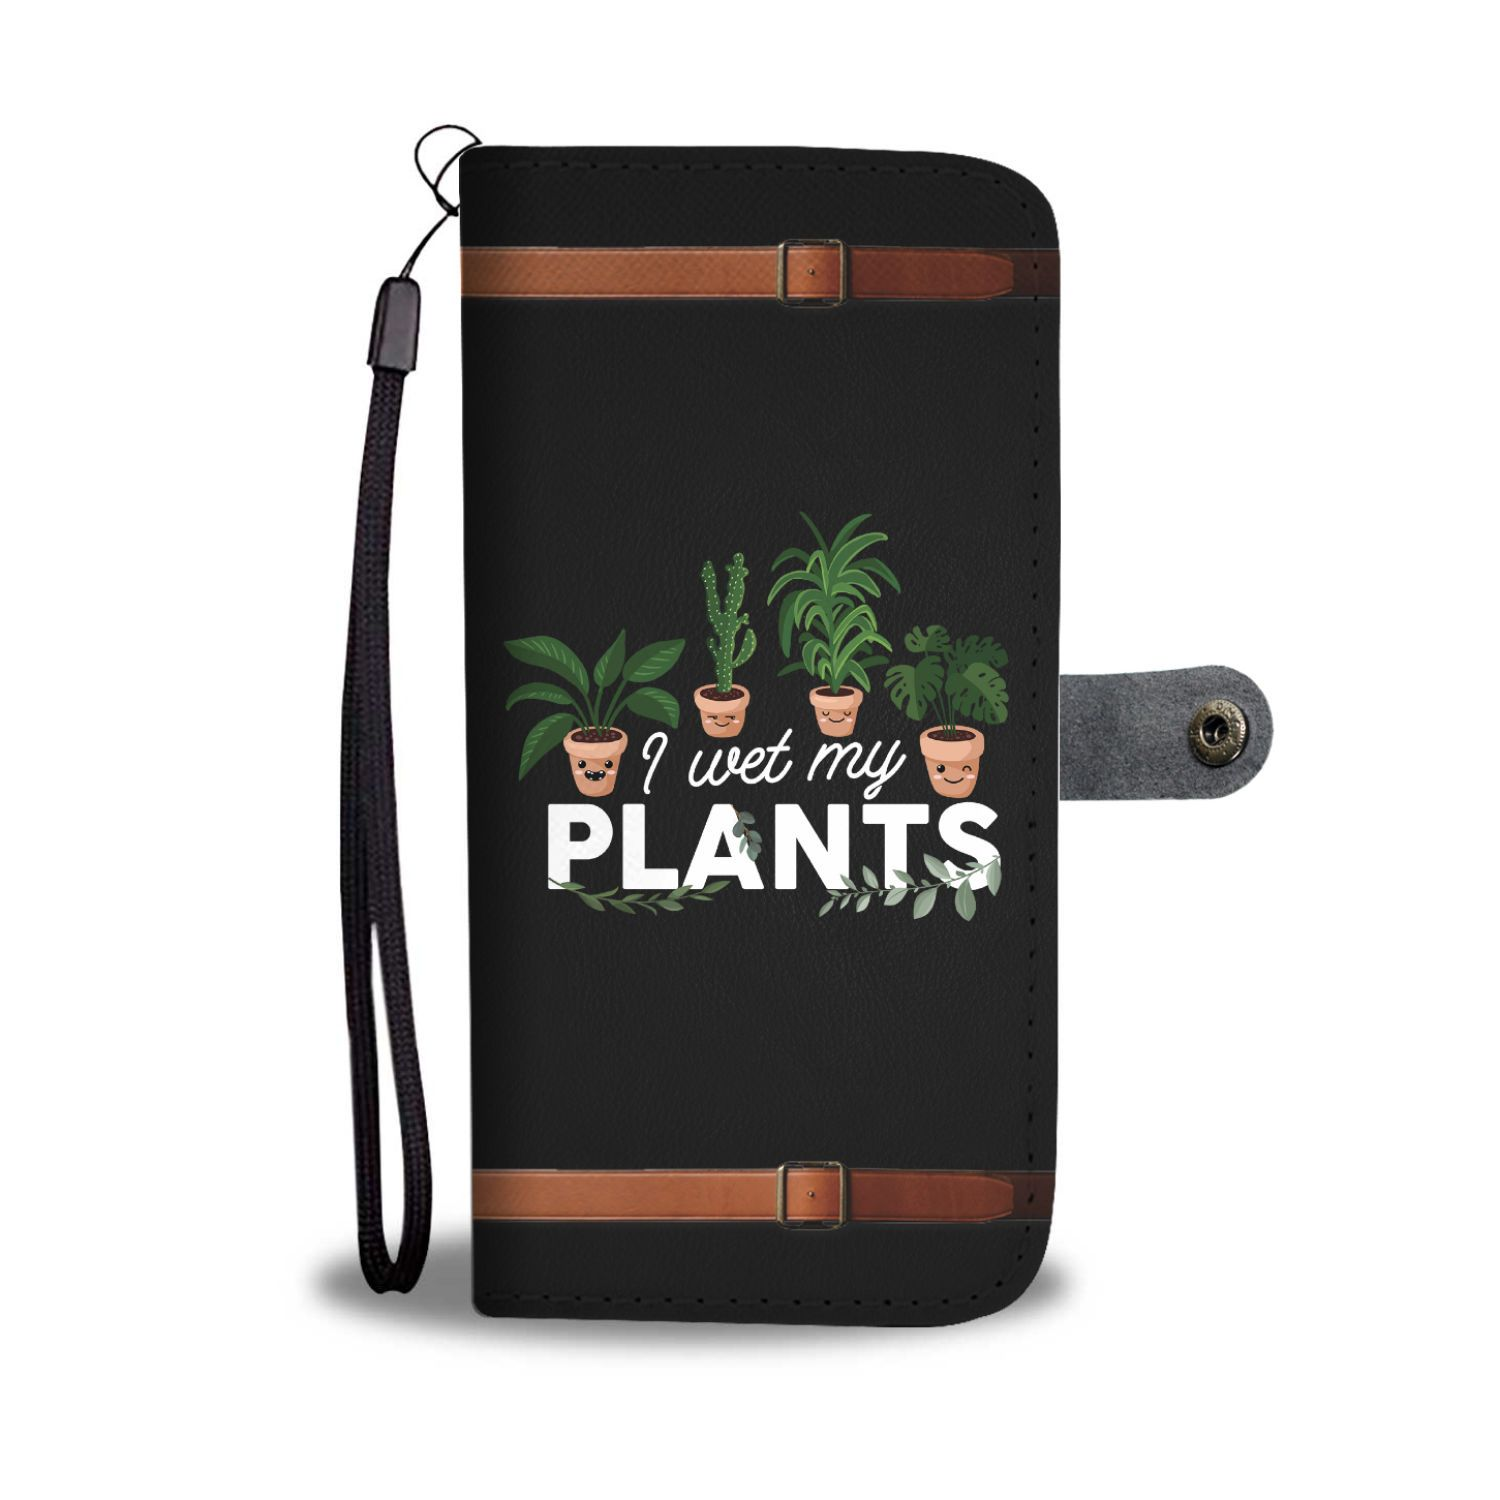 I Wet My Plants Funny Gardening Wallet Phone Case